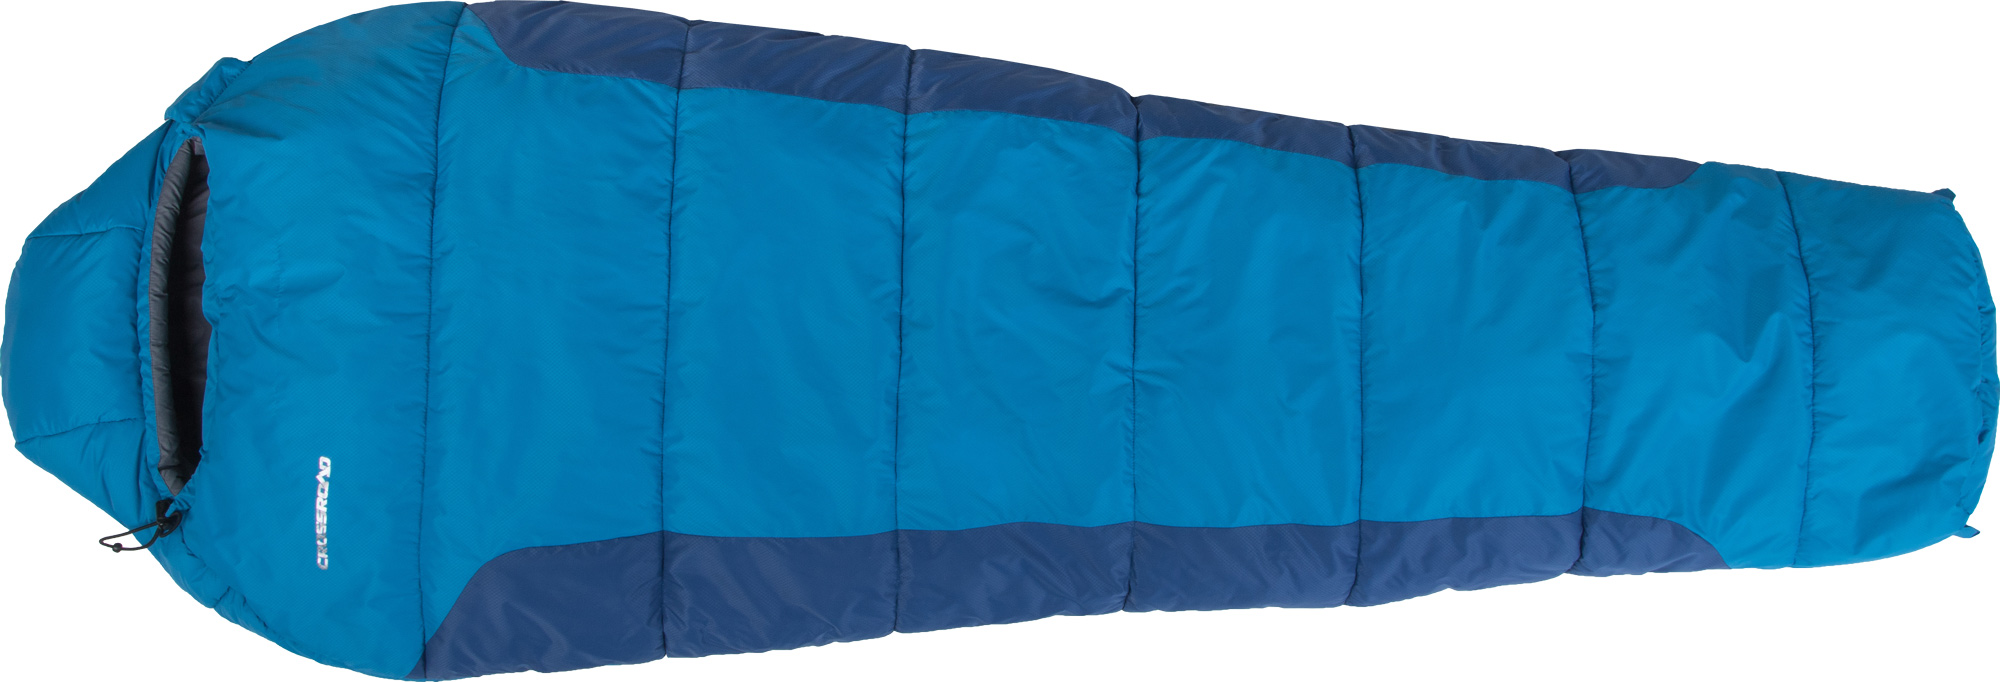 Kids' sleeping bag